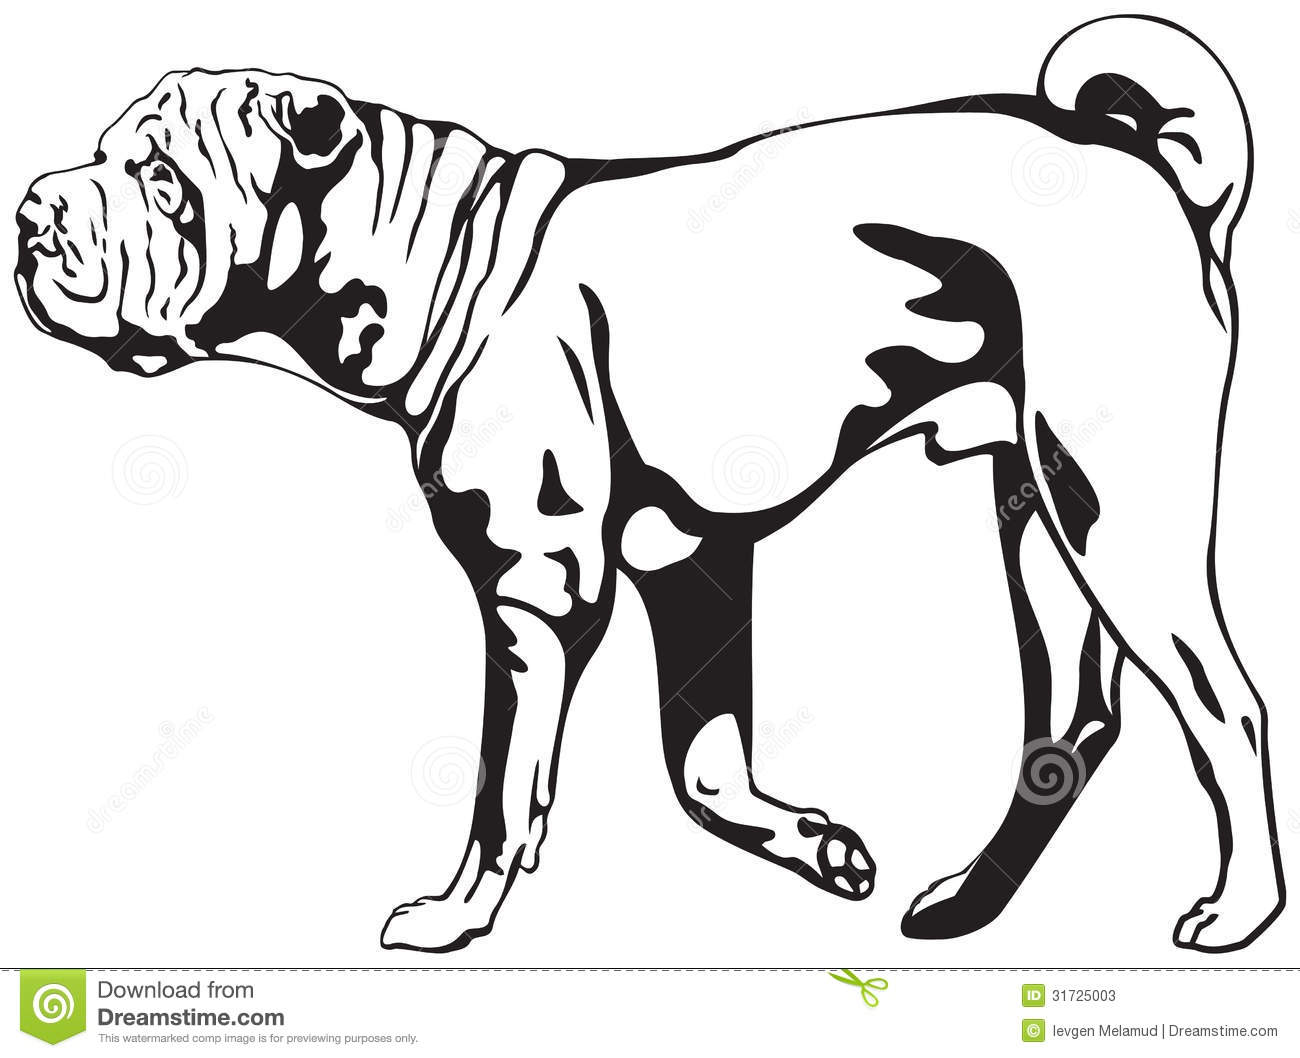 Sharpei clipart #13, Download drawings